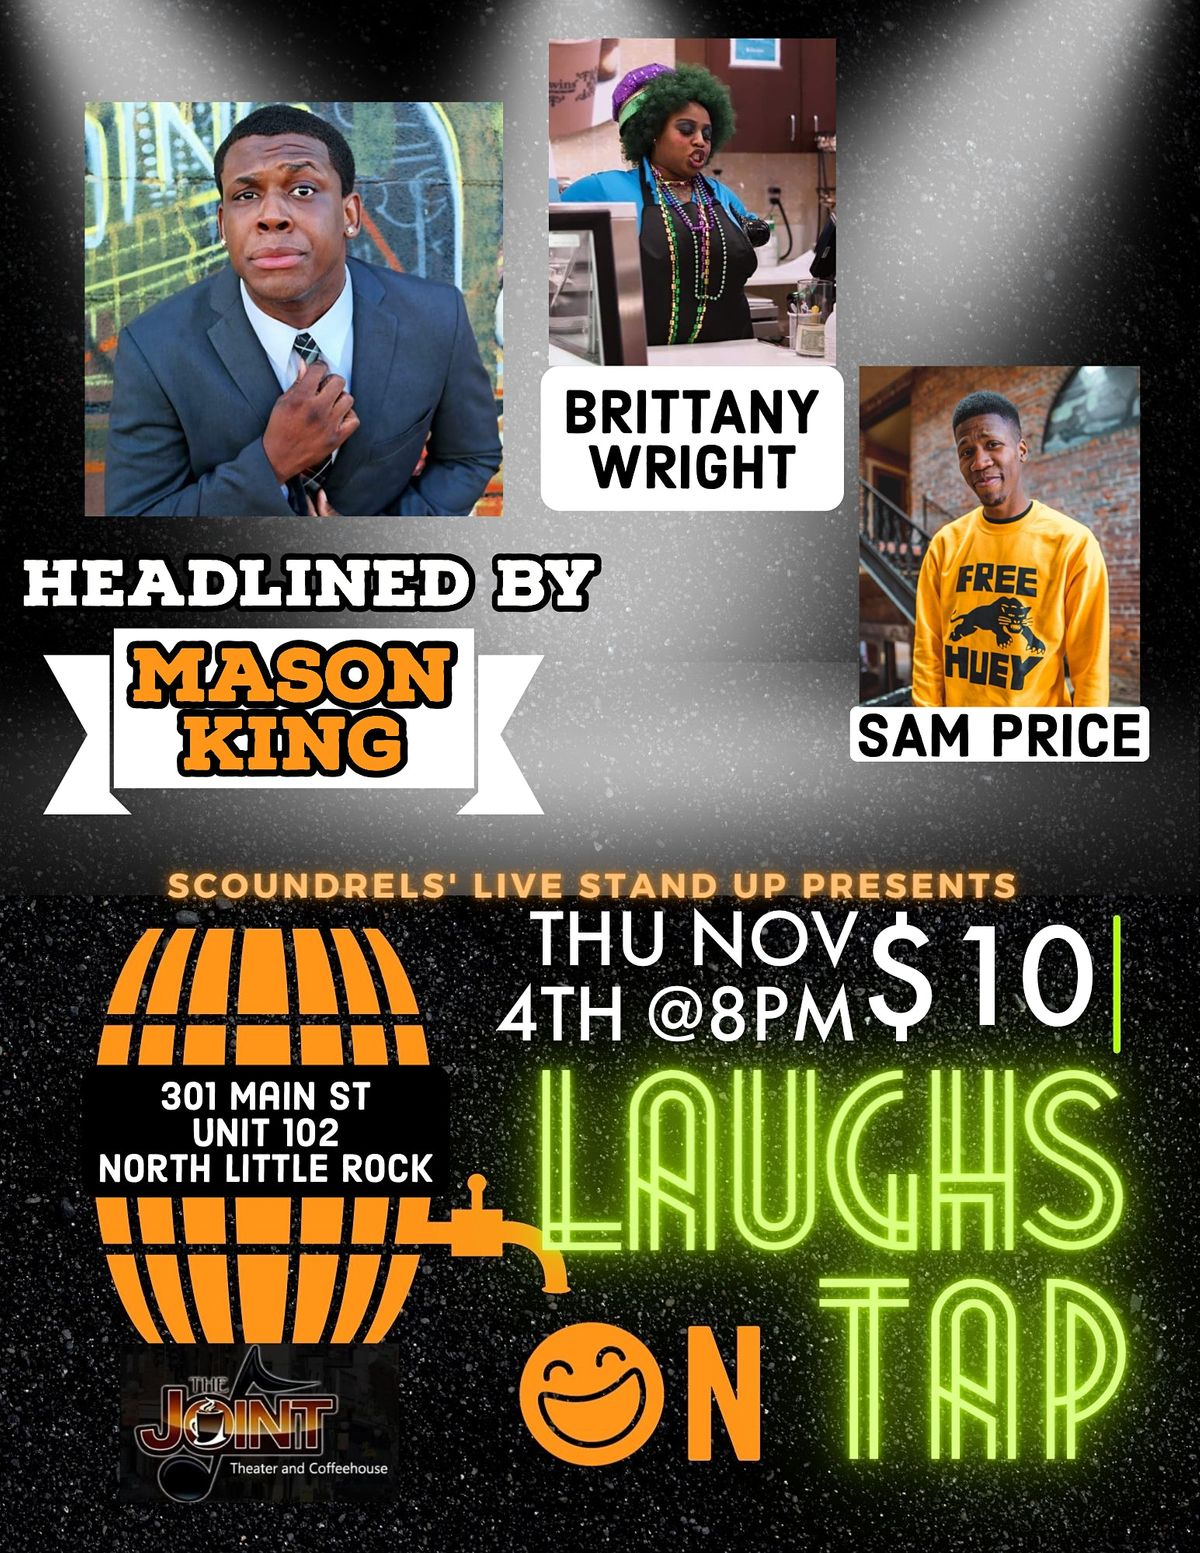 Laughs On Tap at The Joint, 4 November | Event in North Little Rock | AllEvents.in